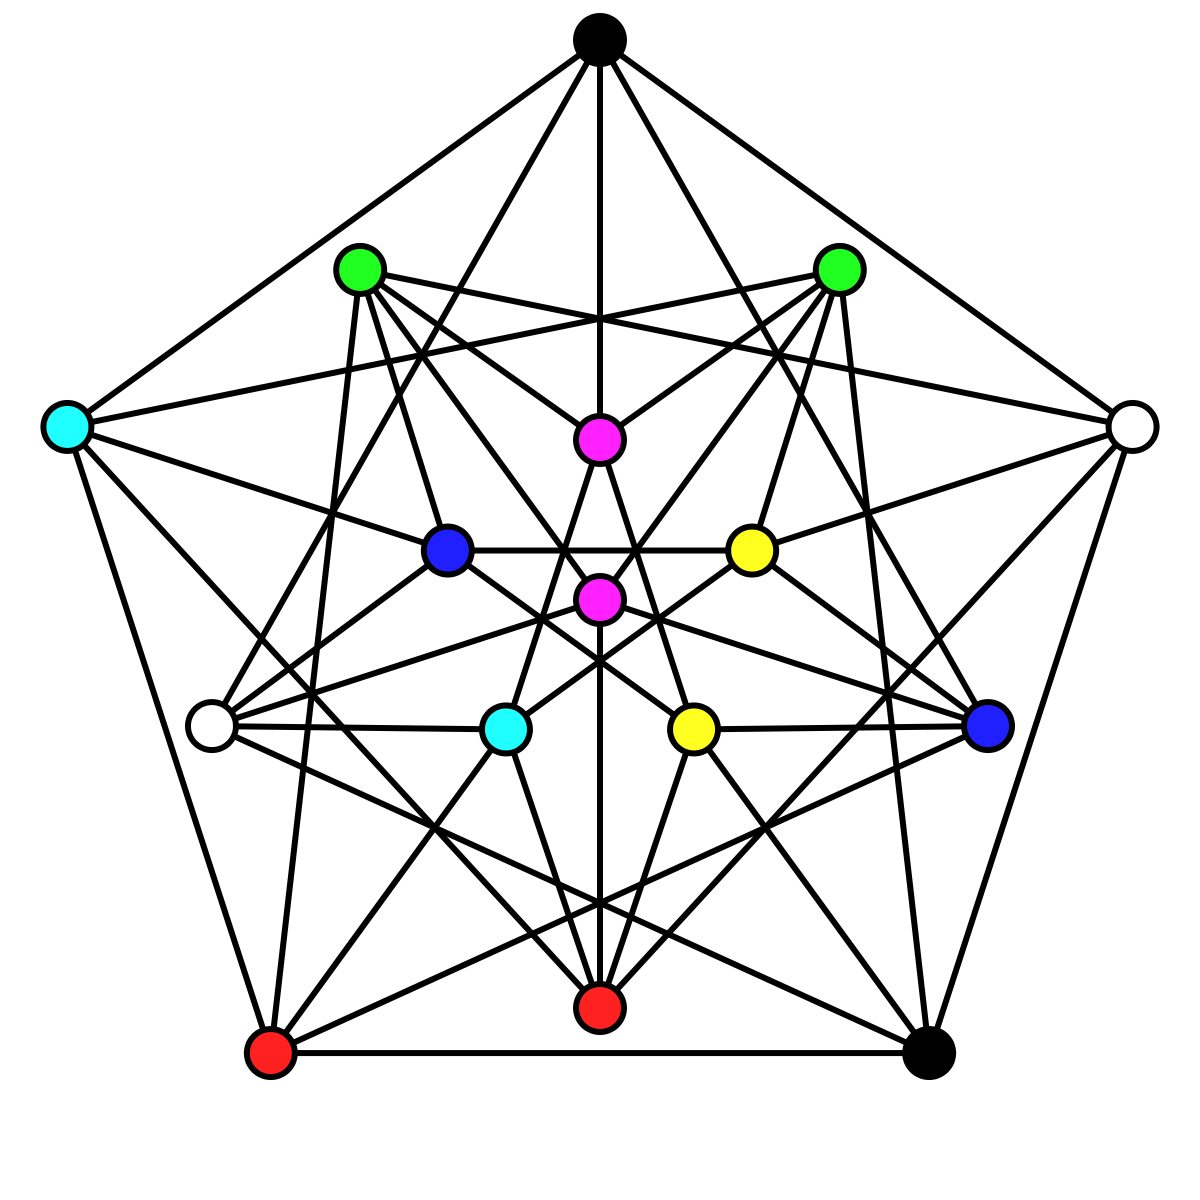 graph coloring 4